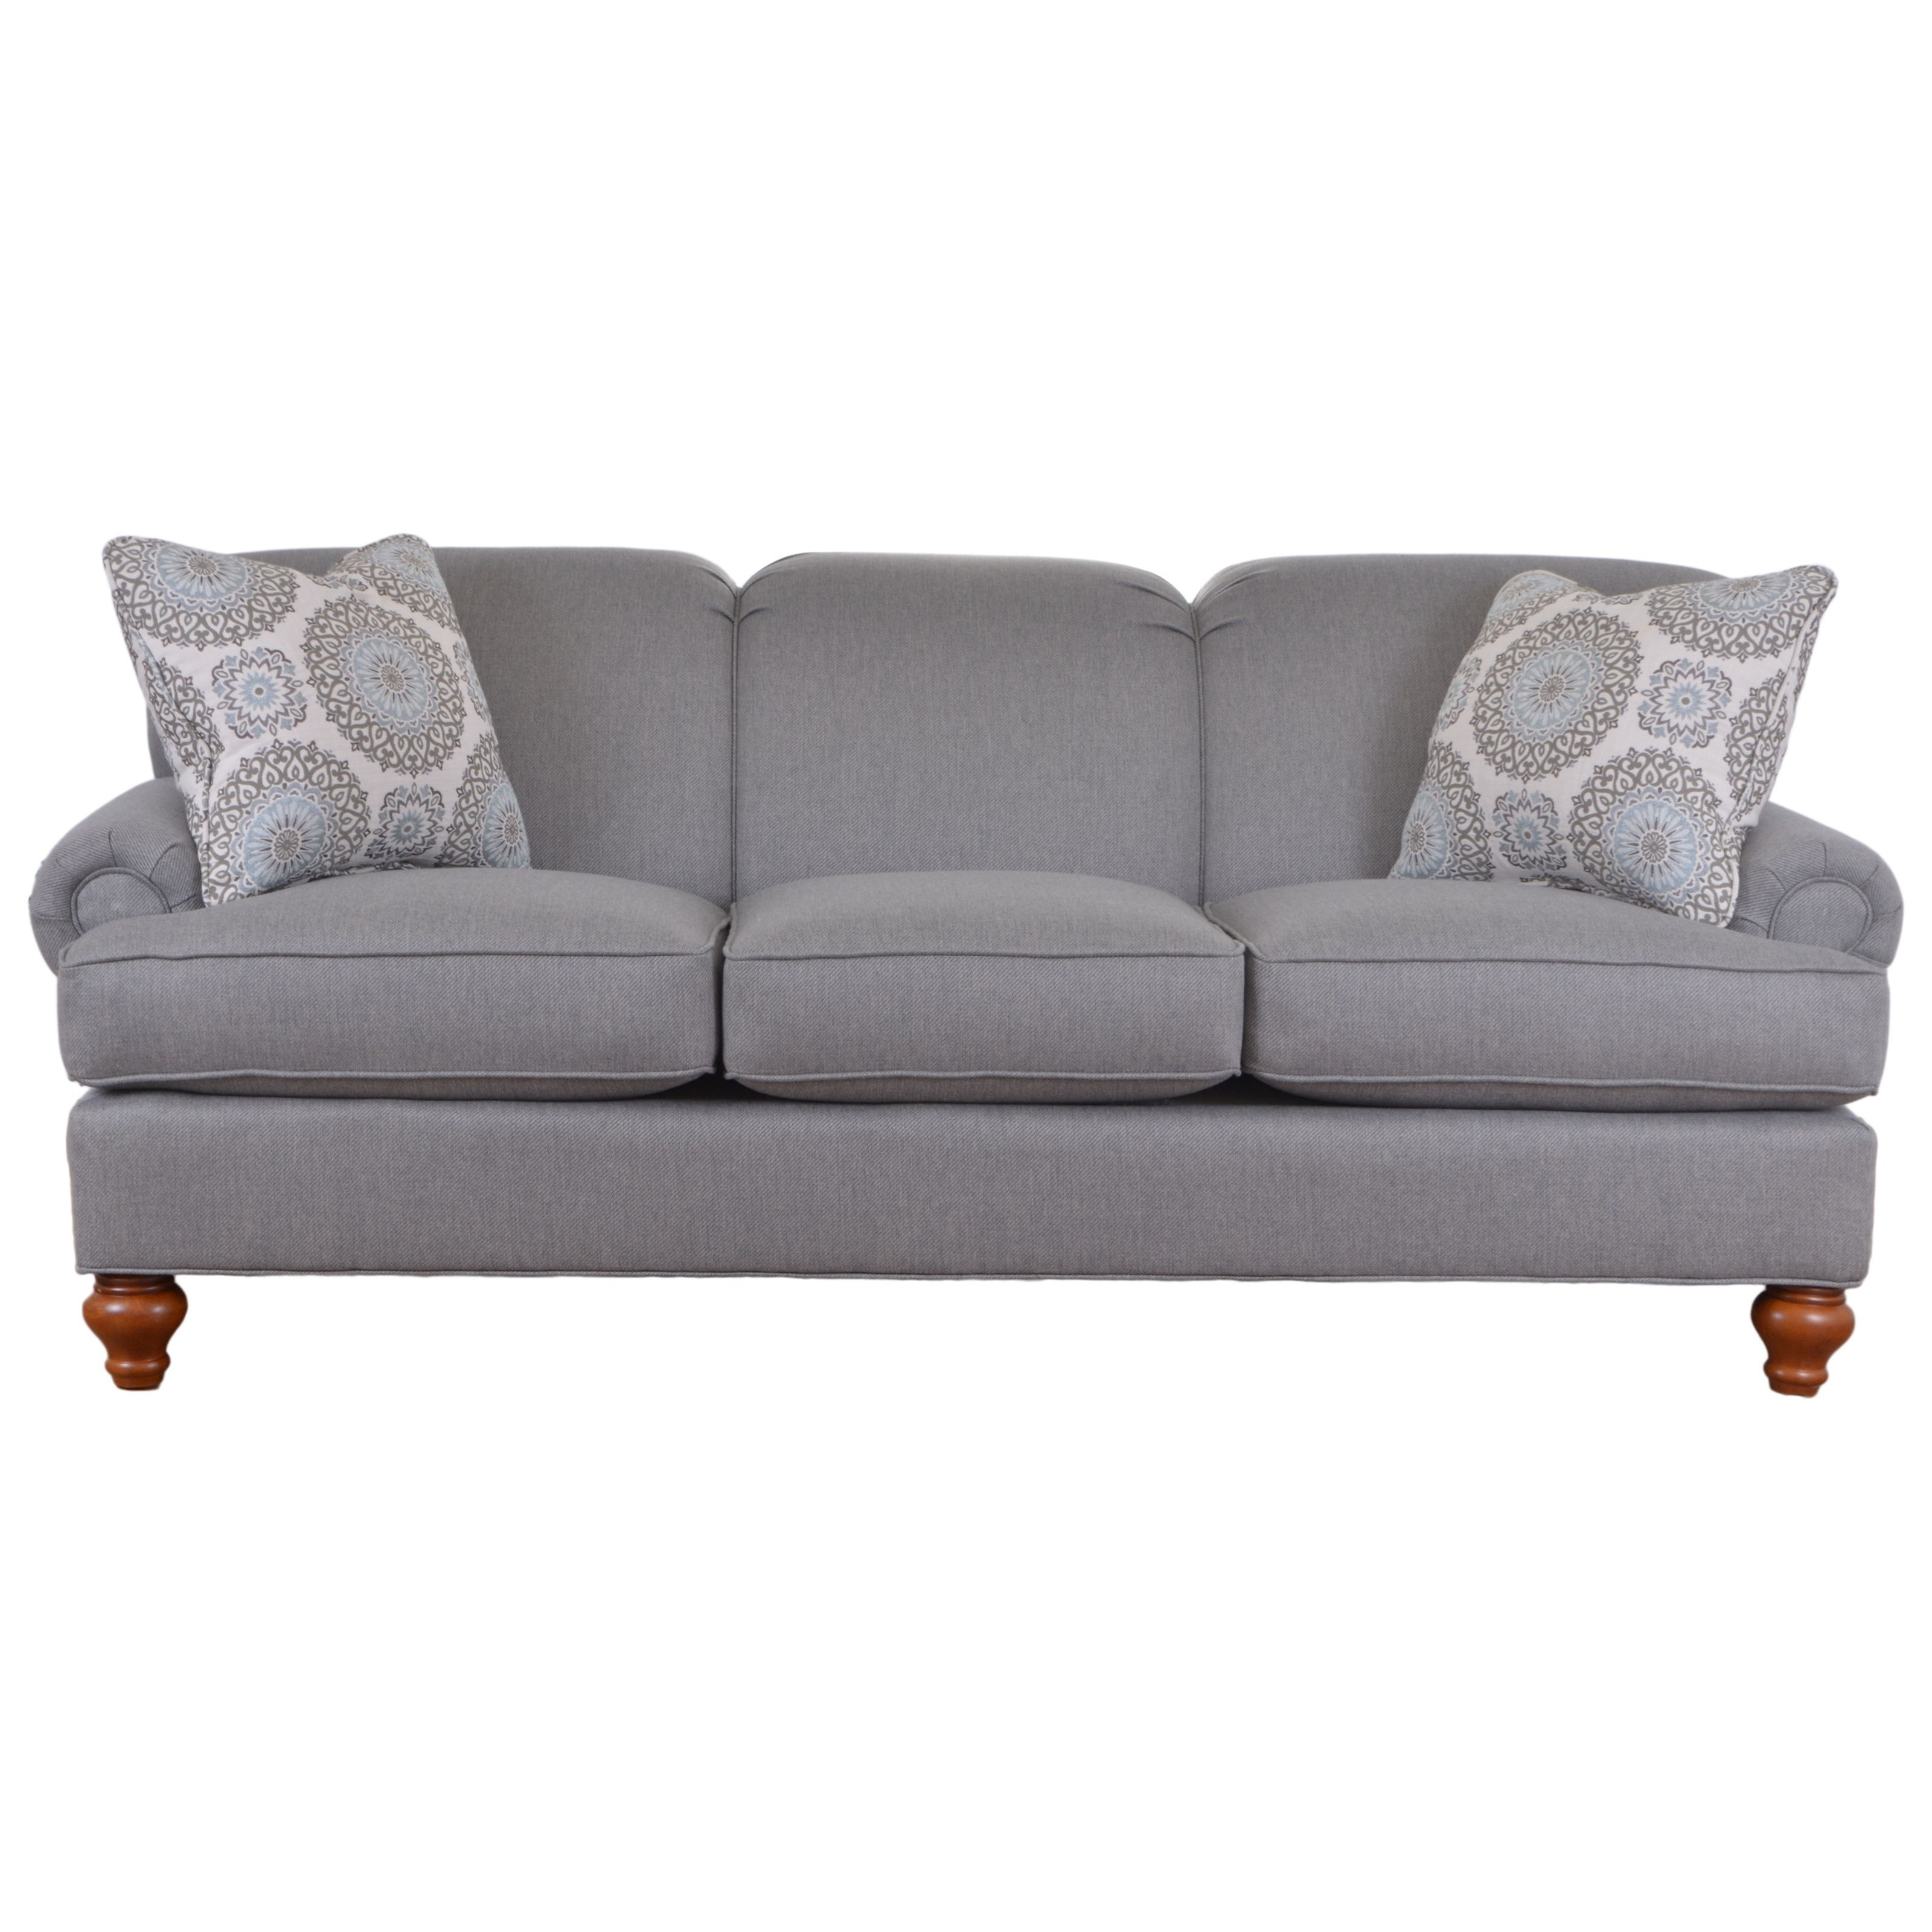 Craftmaster 7047 Traditional Sofa With Turned Wood Legs Miskelly